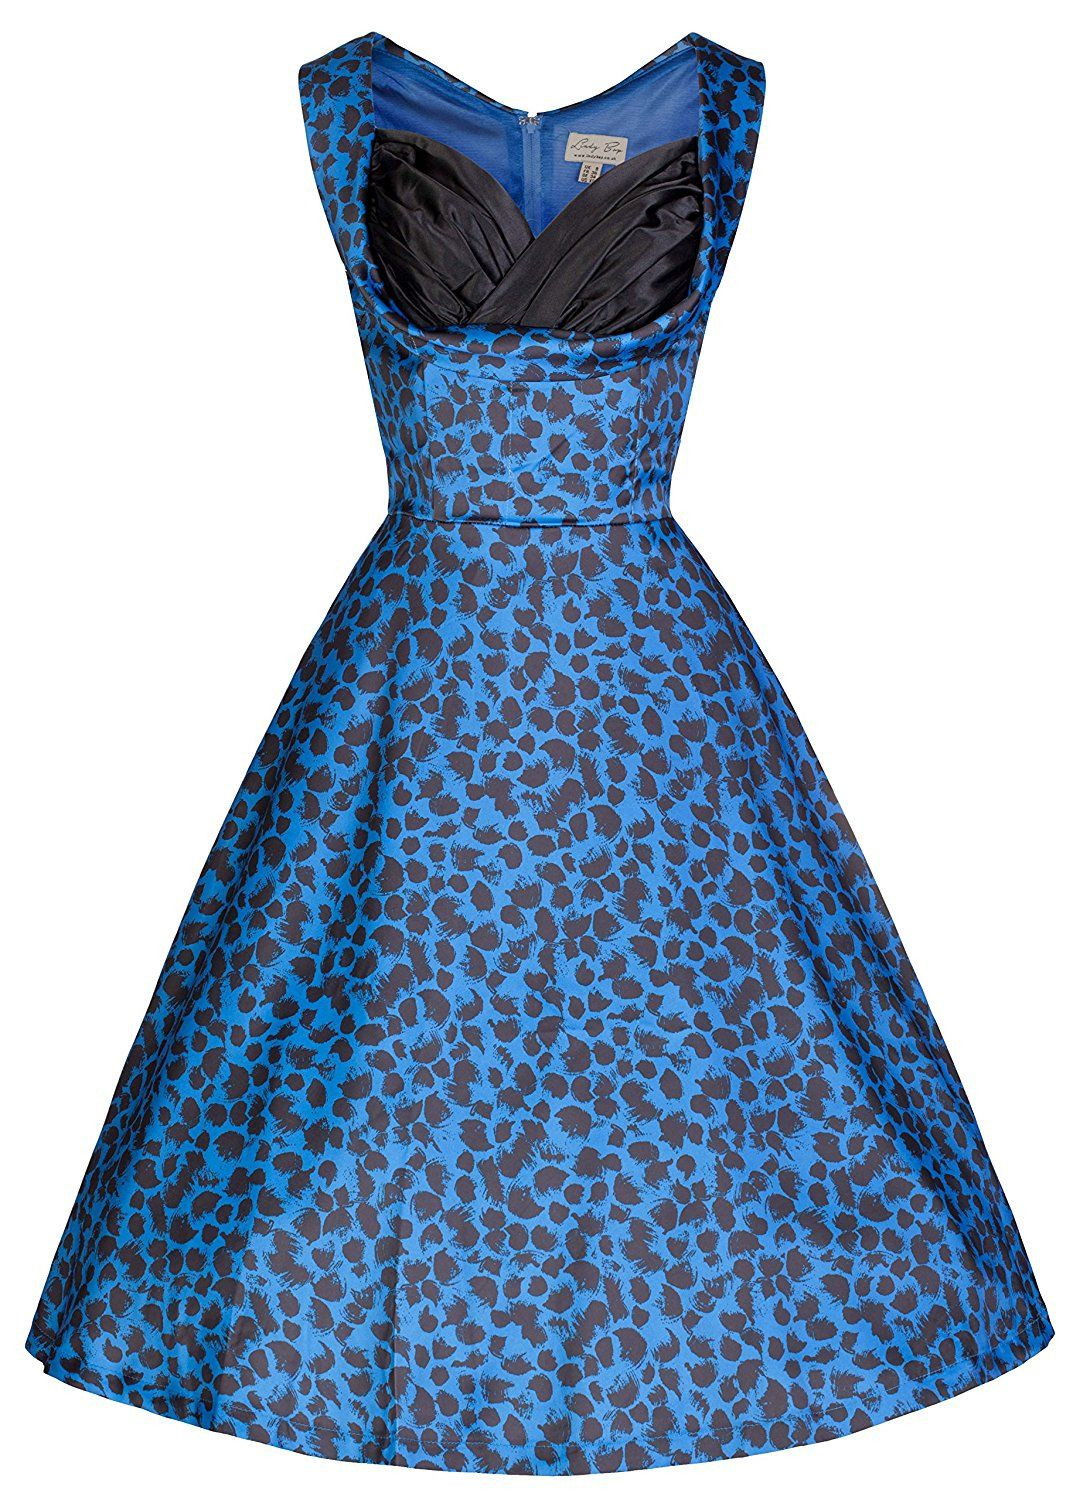 6169e673a827 Lindy Bop  Ophelia  Vintage 50 s Electric Blue Print Party Swing Dress    You can get more details here   Women s dresses